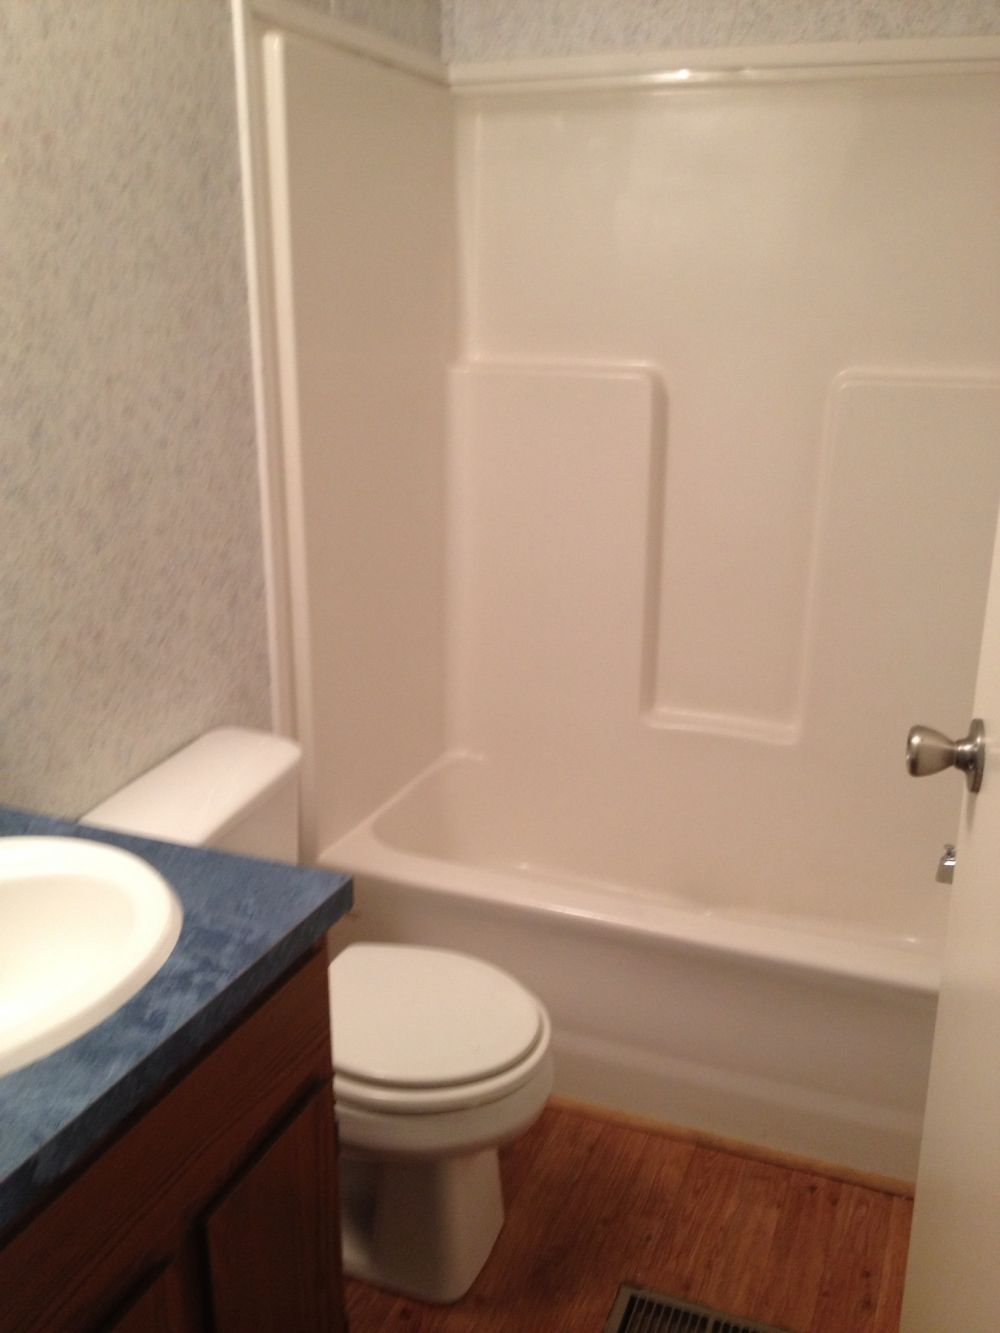 Affordable apartments in Milledgeville, GA